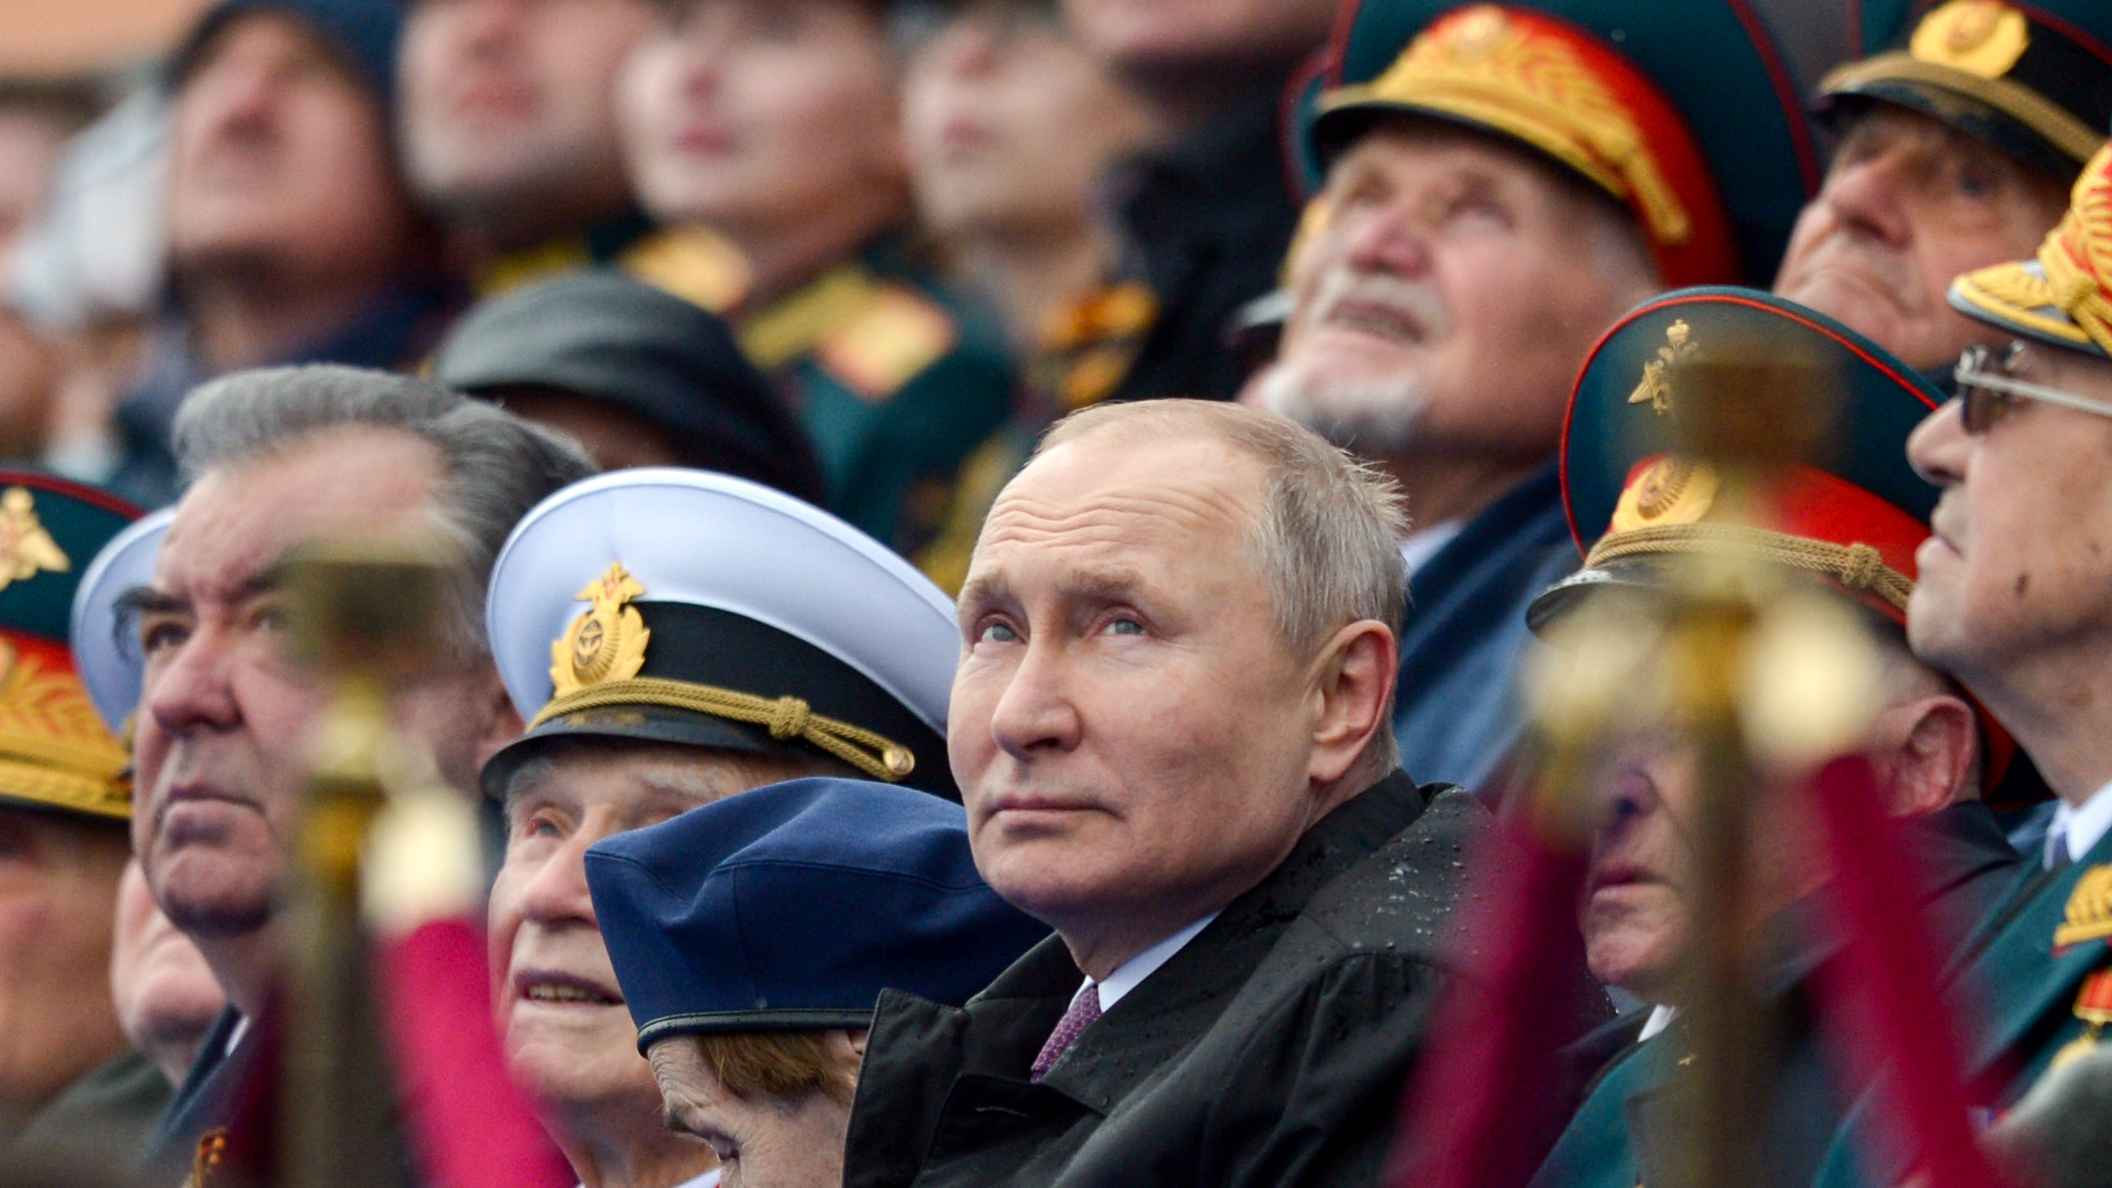 Photo: MOSCOW, RUSSIA – MAY 9, 2021: Russia's President Vladimir Putin (C) attends a Victory Day military parade held in Red Square to mark the 76th anniversary of the victory over Nazi Germany in World War II. Credit: Alexei Nikolsky/Russian Presidential Press and Information Office/TASS.